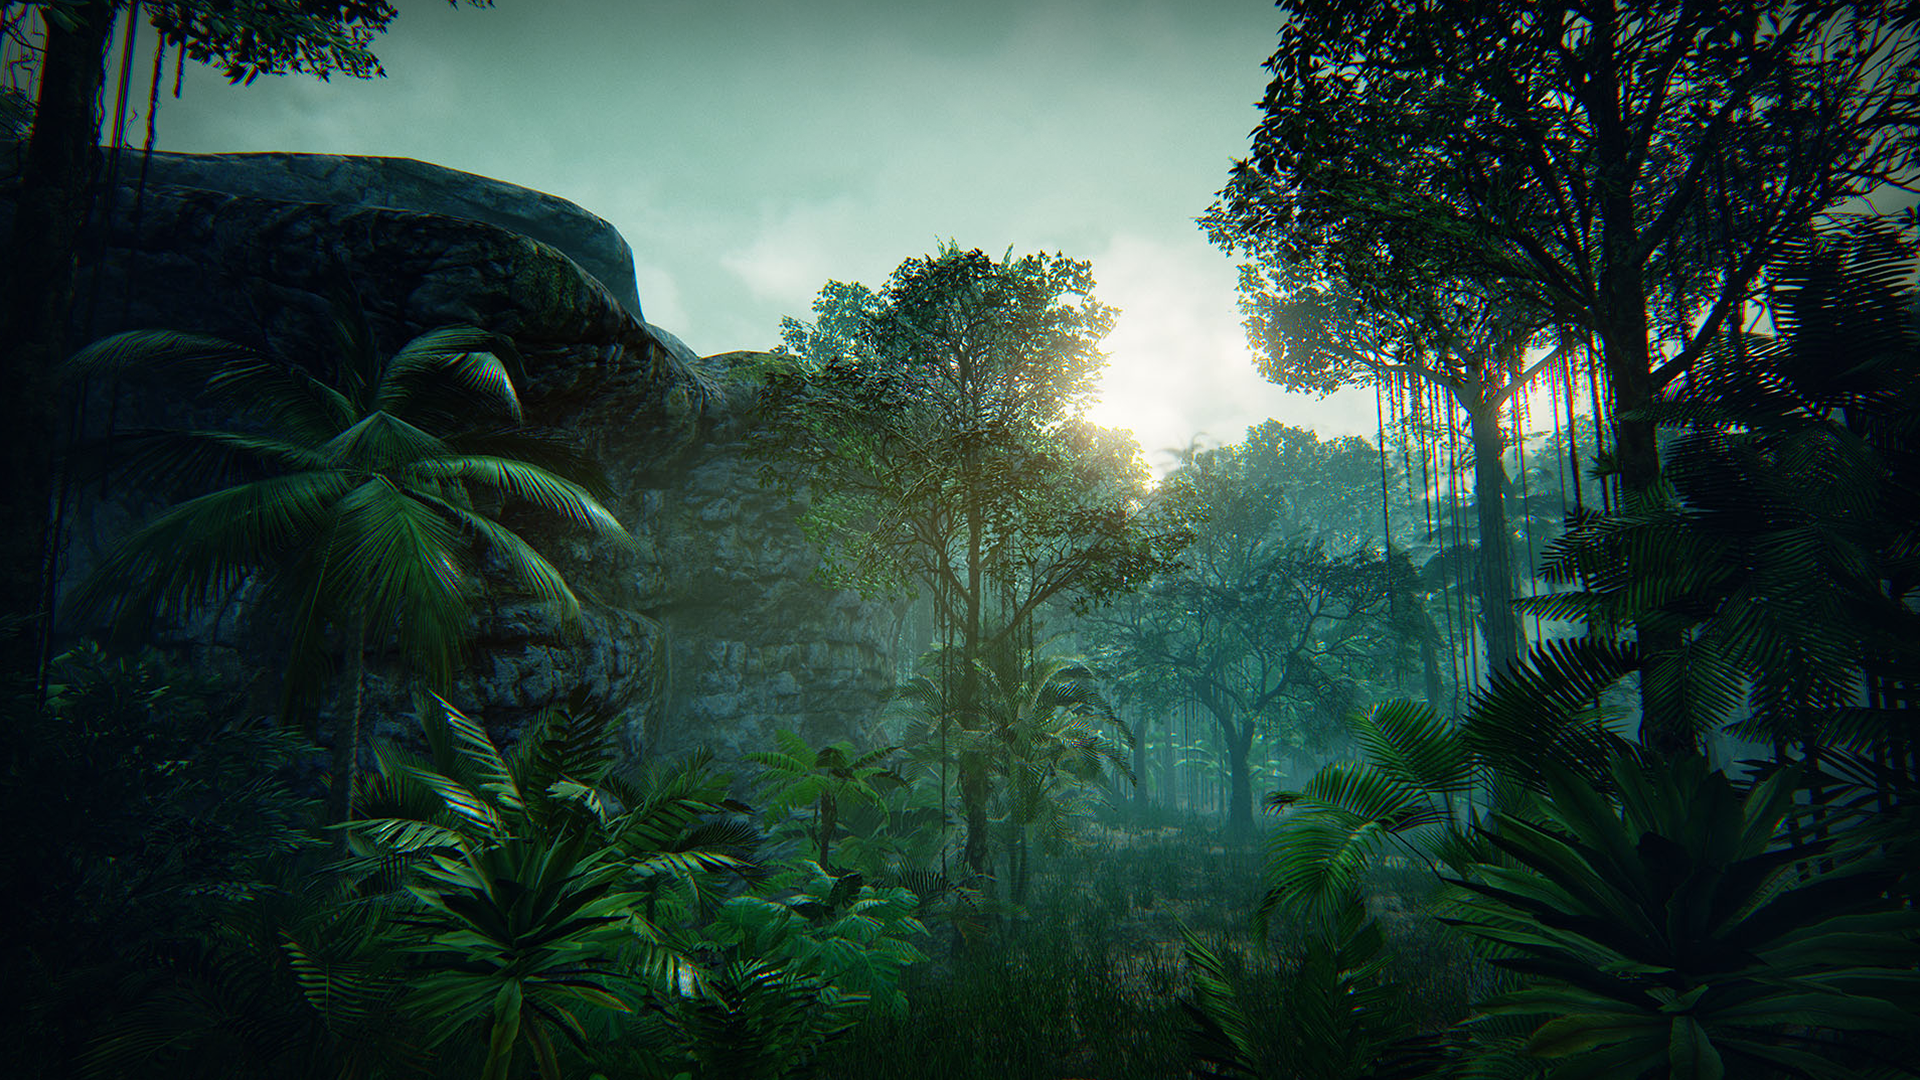 tropical forest by manufactura k4 in environments ue4